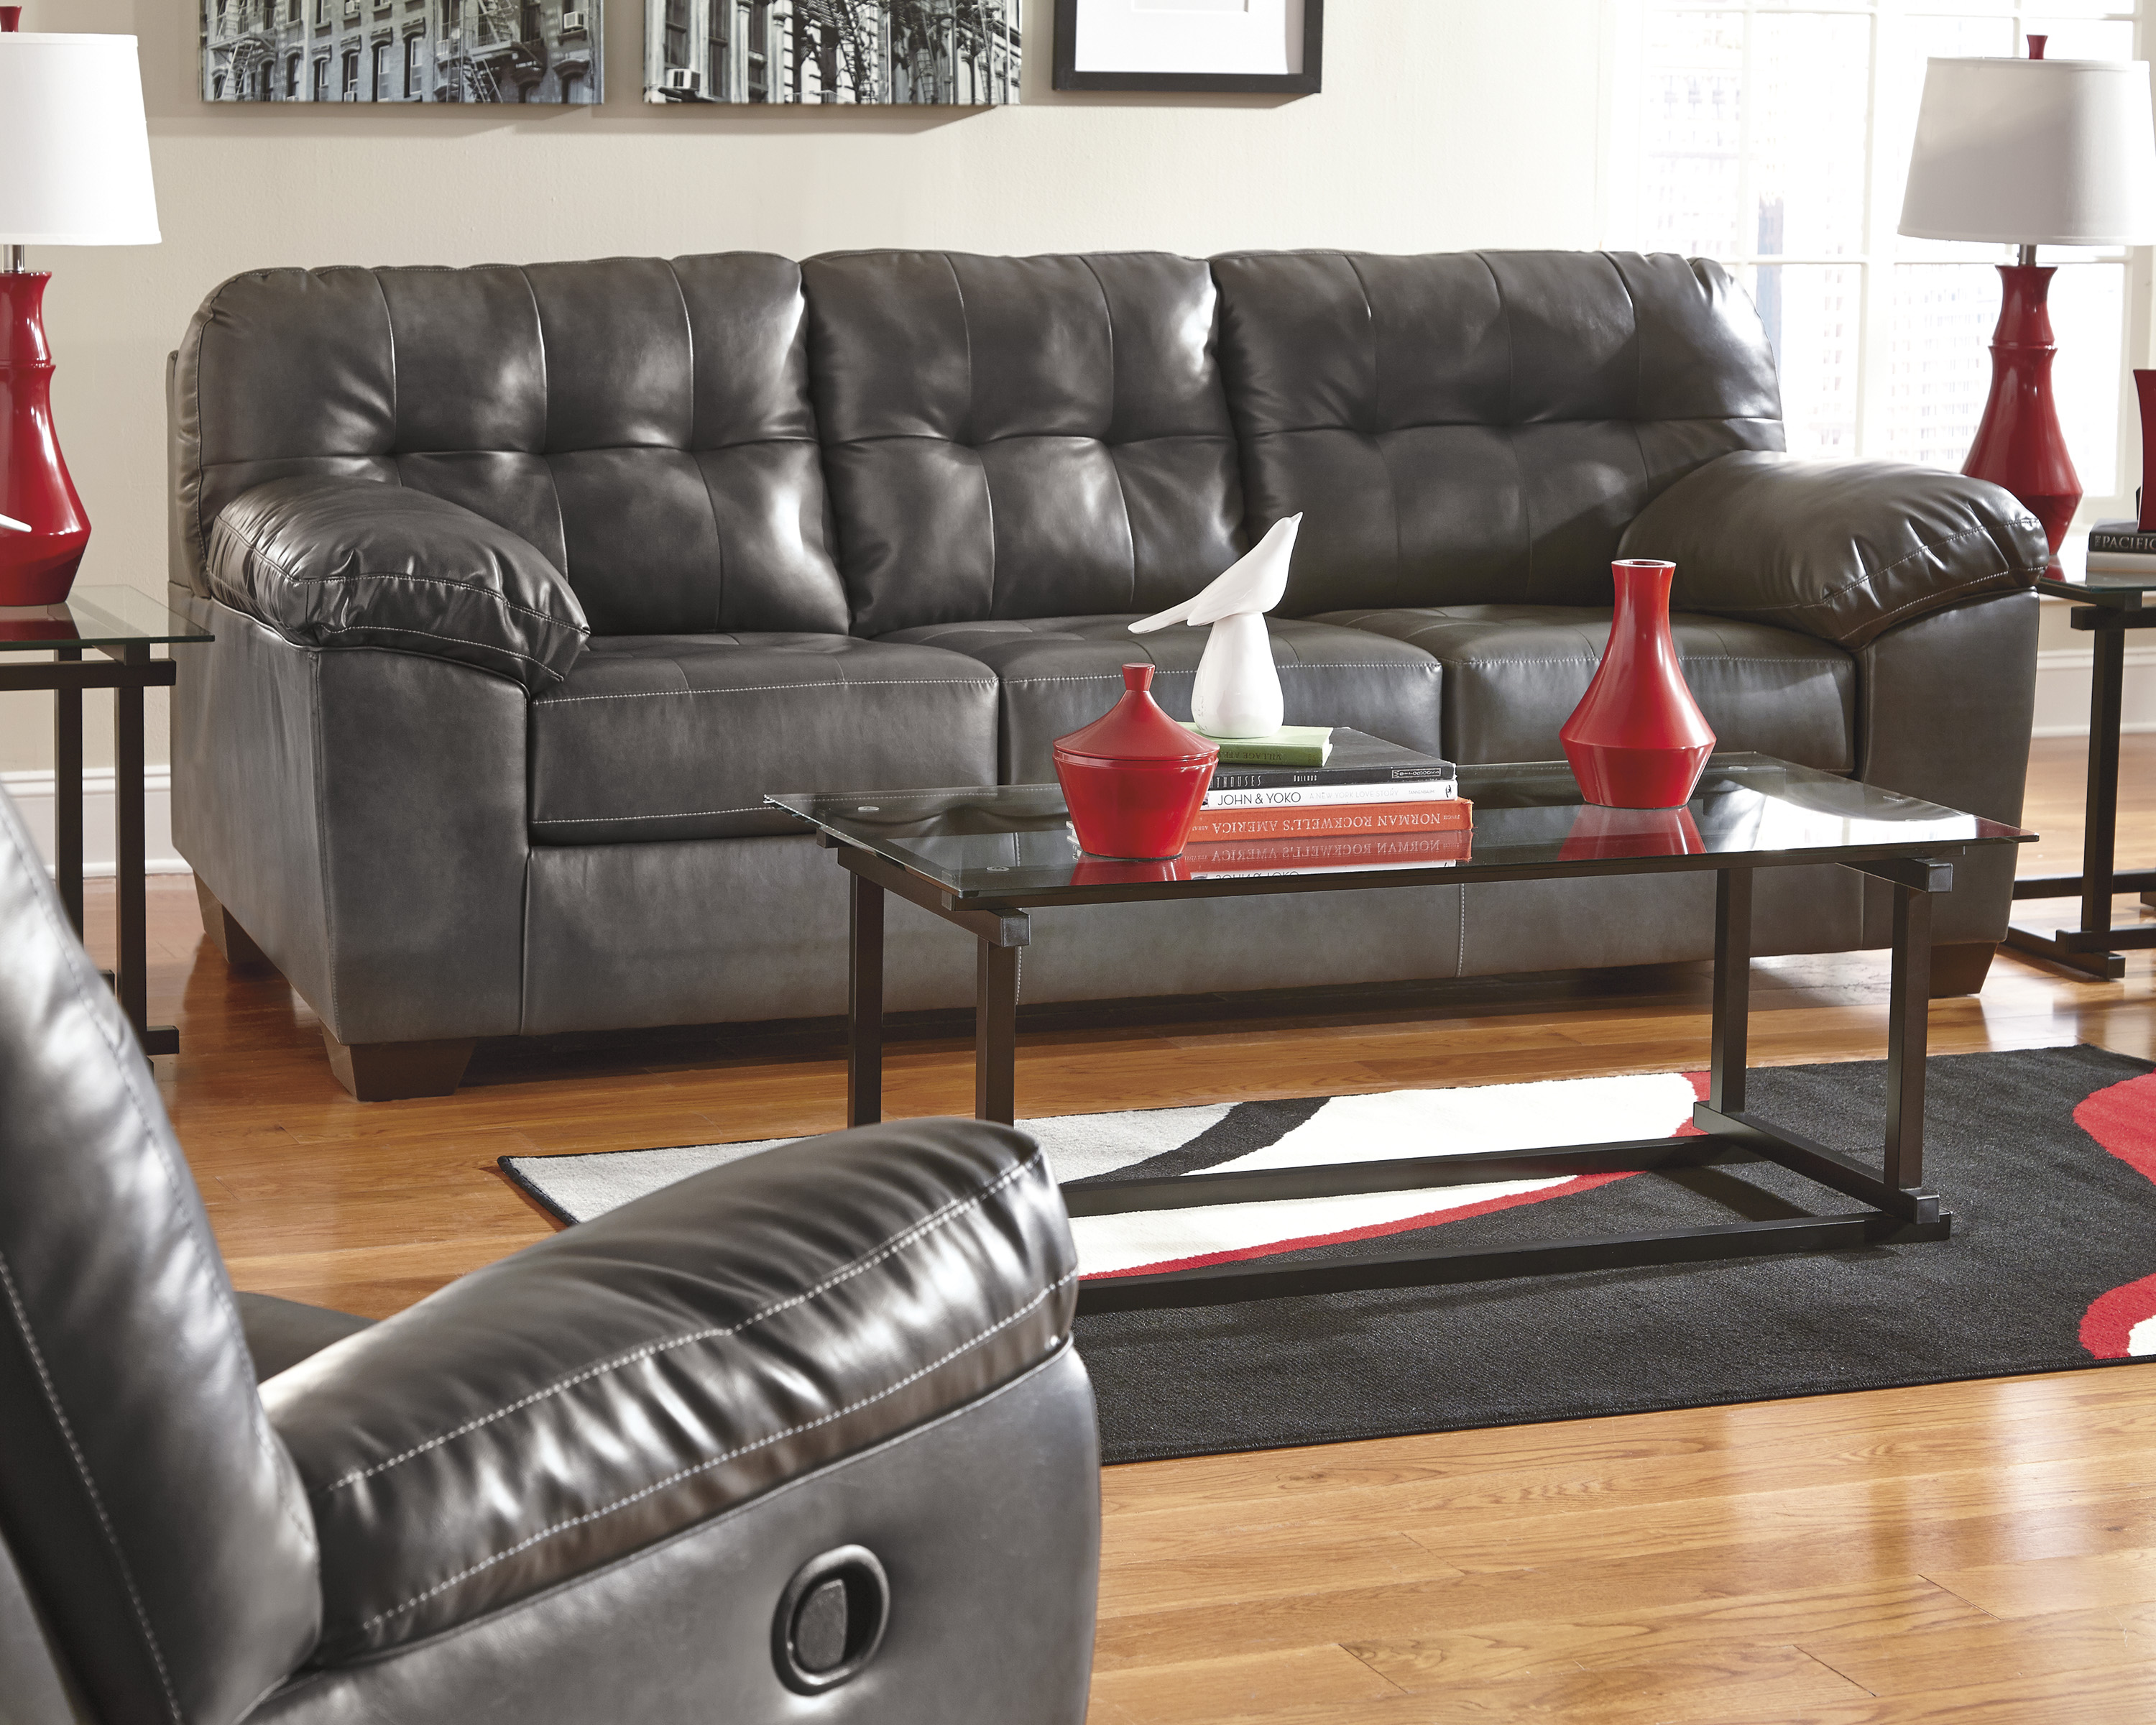 Amazing Alliston Sofa W Recliner Central Rent 2 Own Caraccident5 Cool Chair Designs And Ideas Caraccident5Info